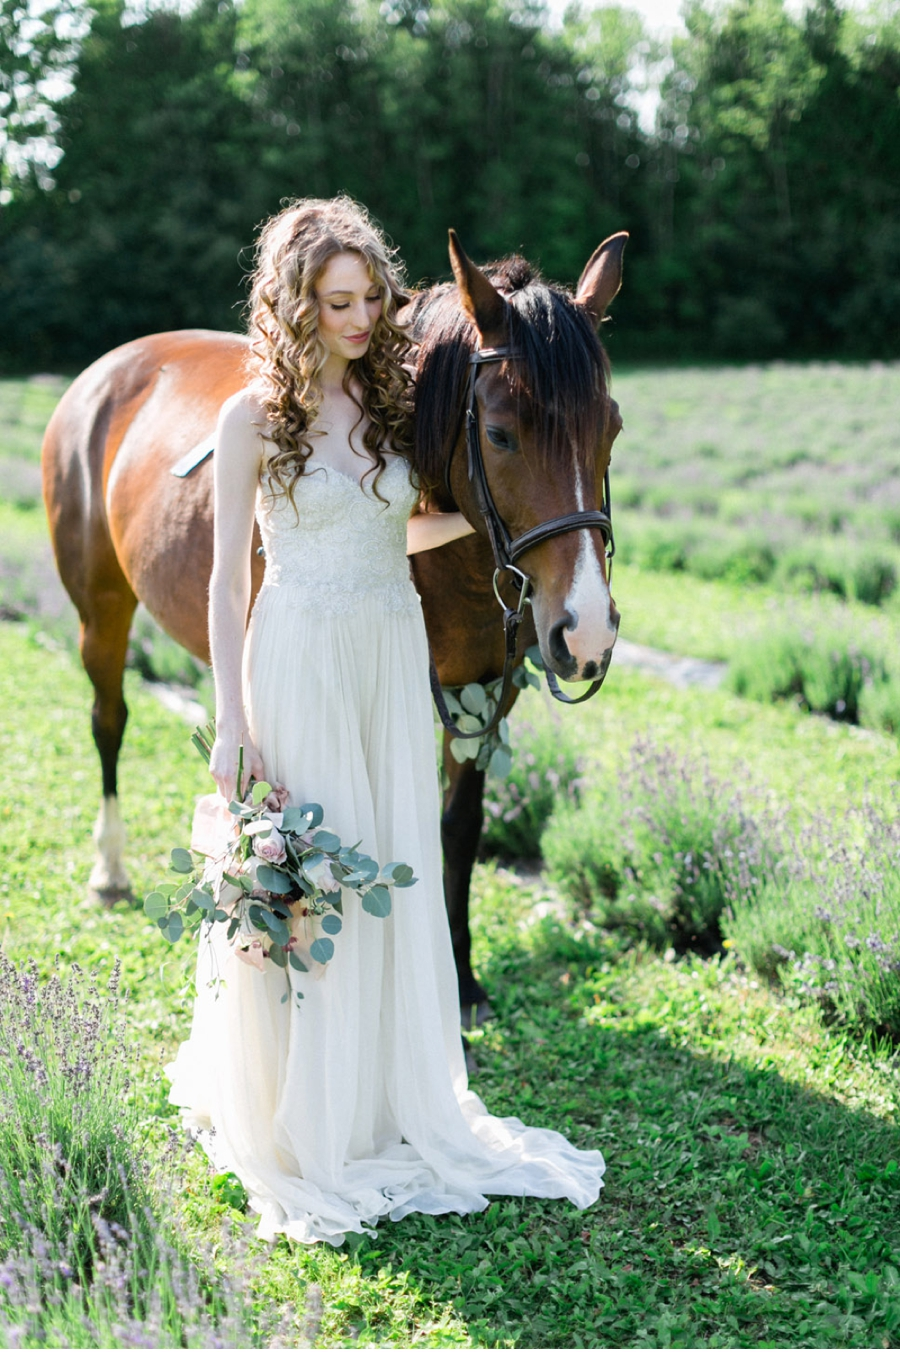 Bride-with-Horse-at-Lavender-Farm